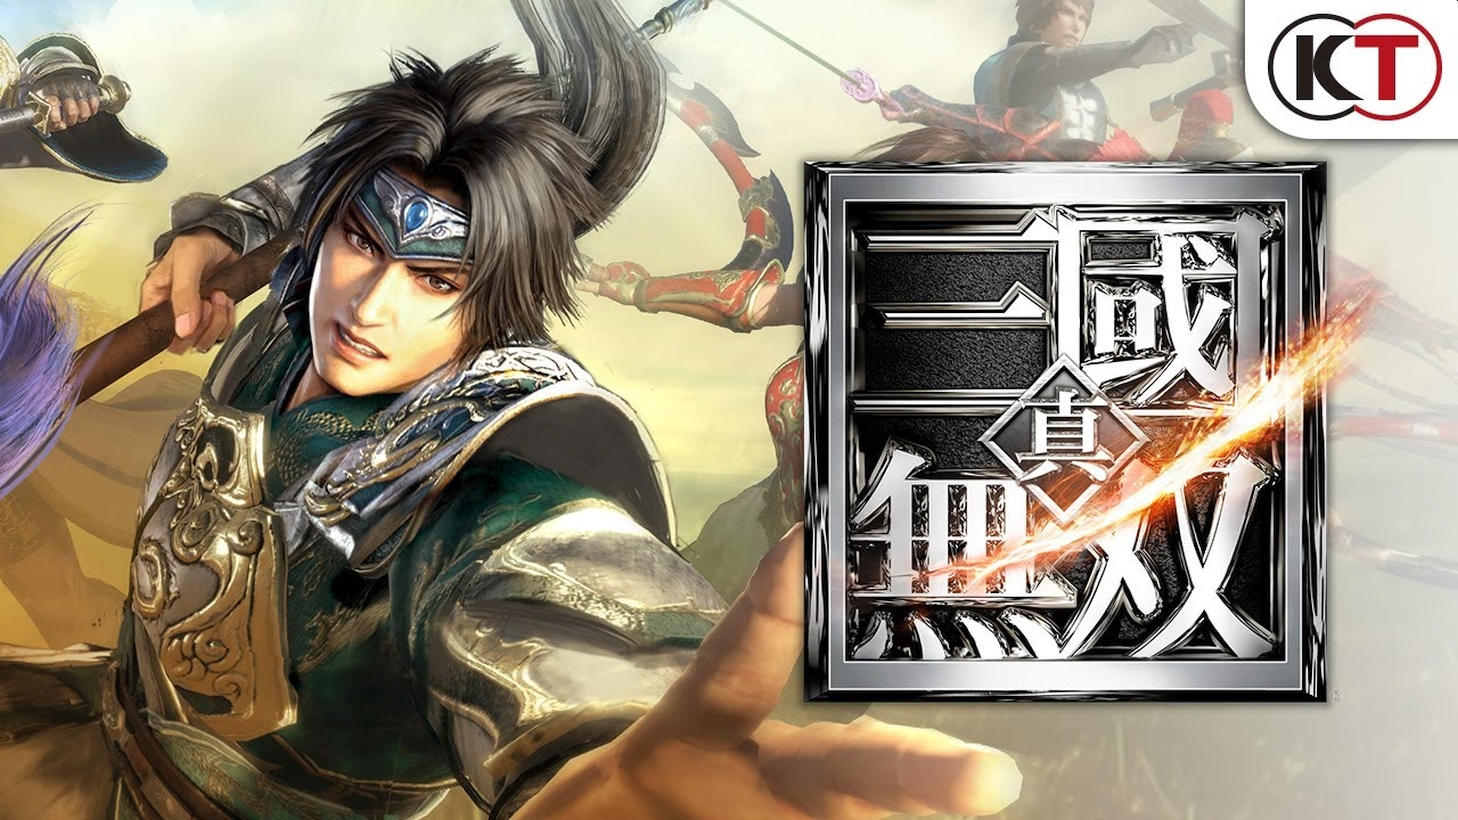 Koei Tecmo Announces New Dynasty Warriors Mobile Game With Closed Beta In October